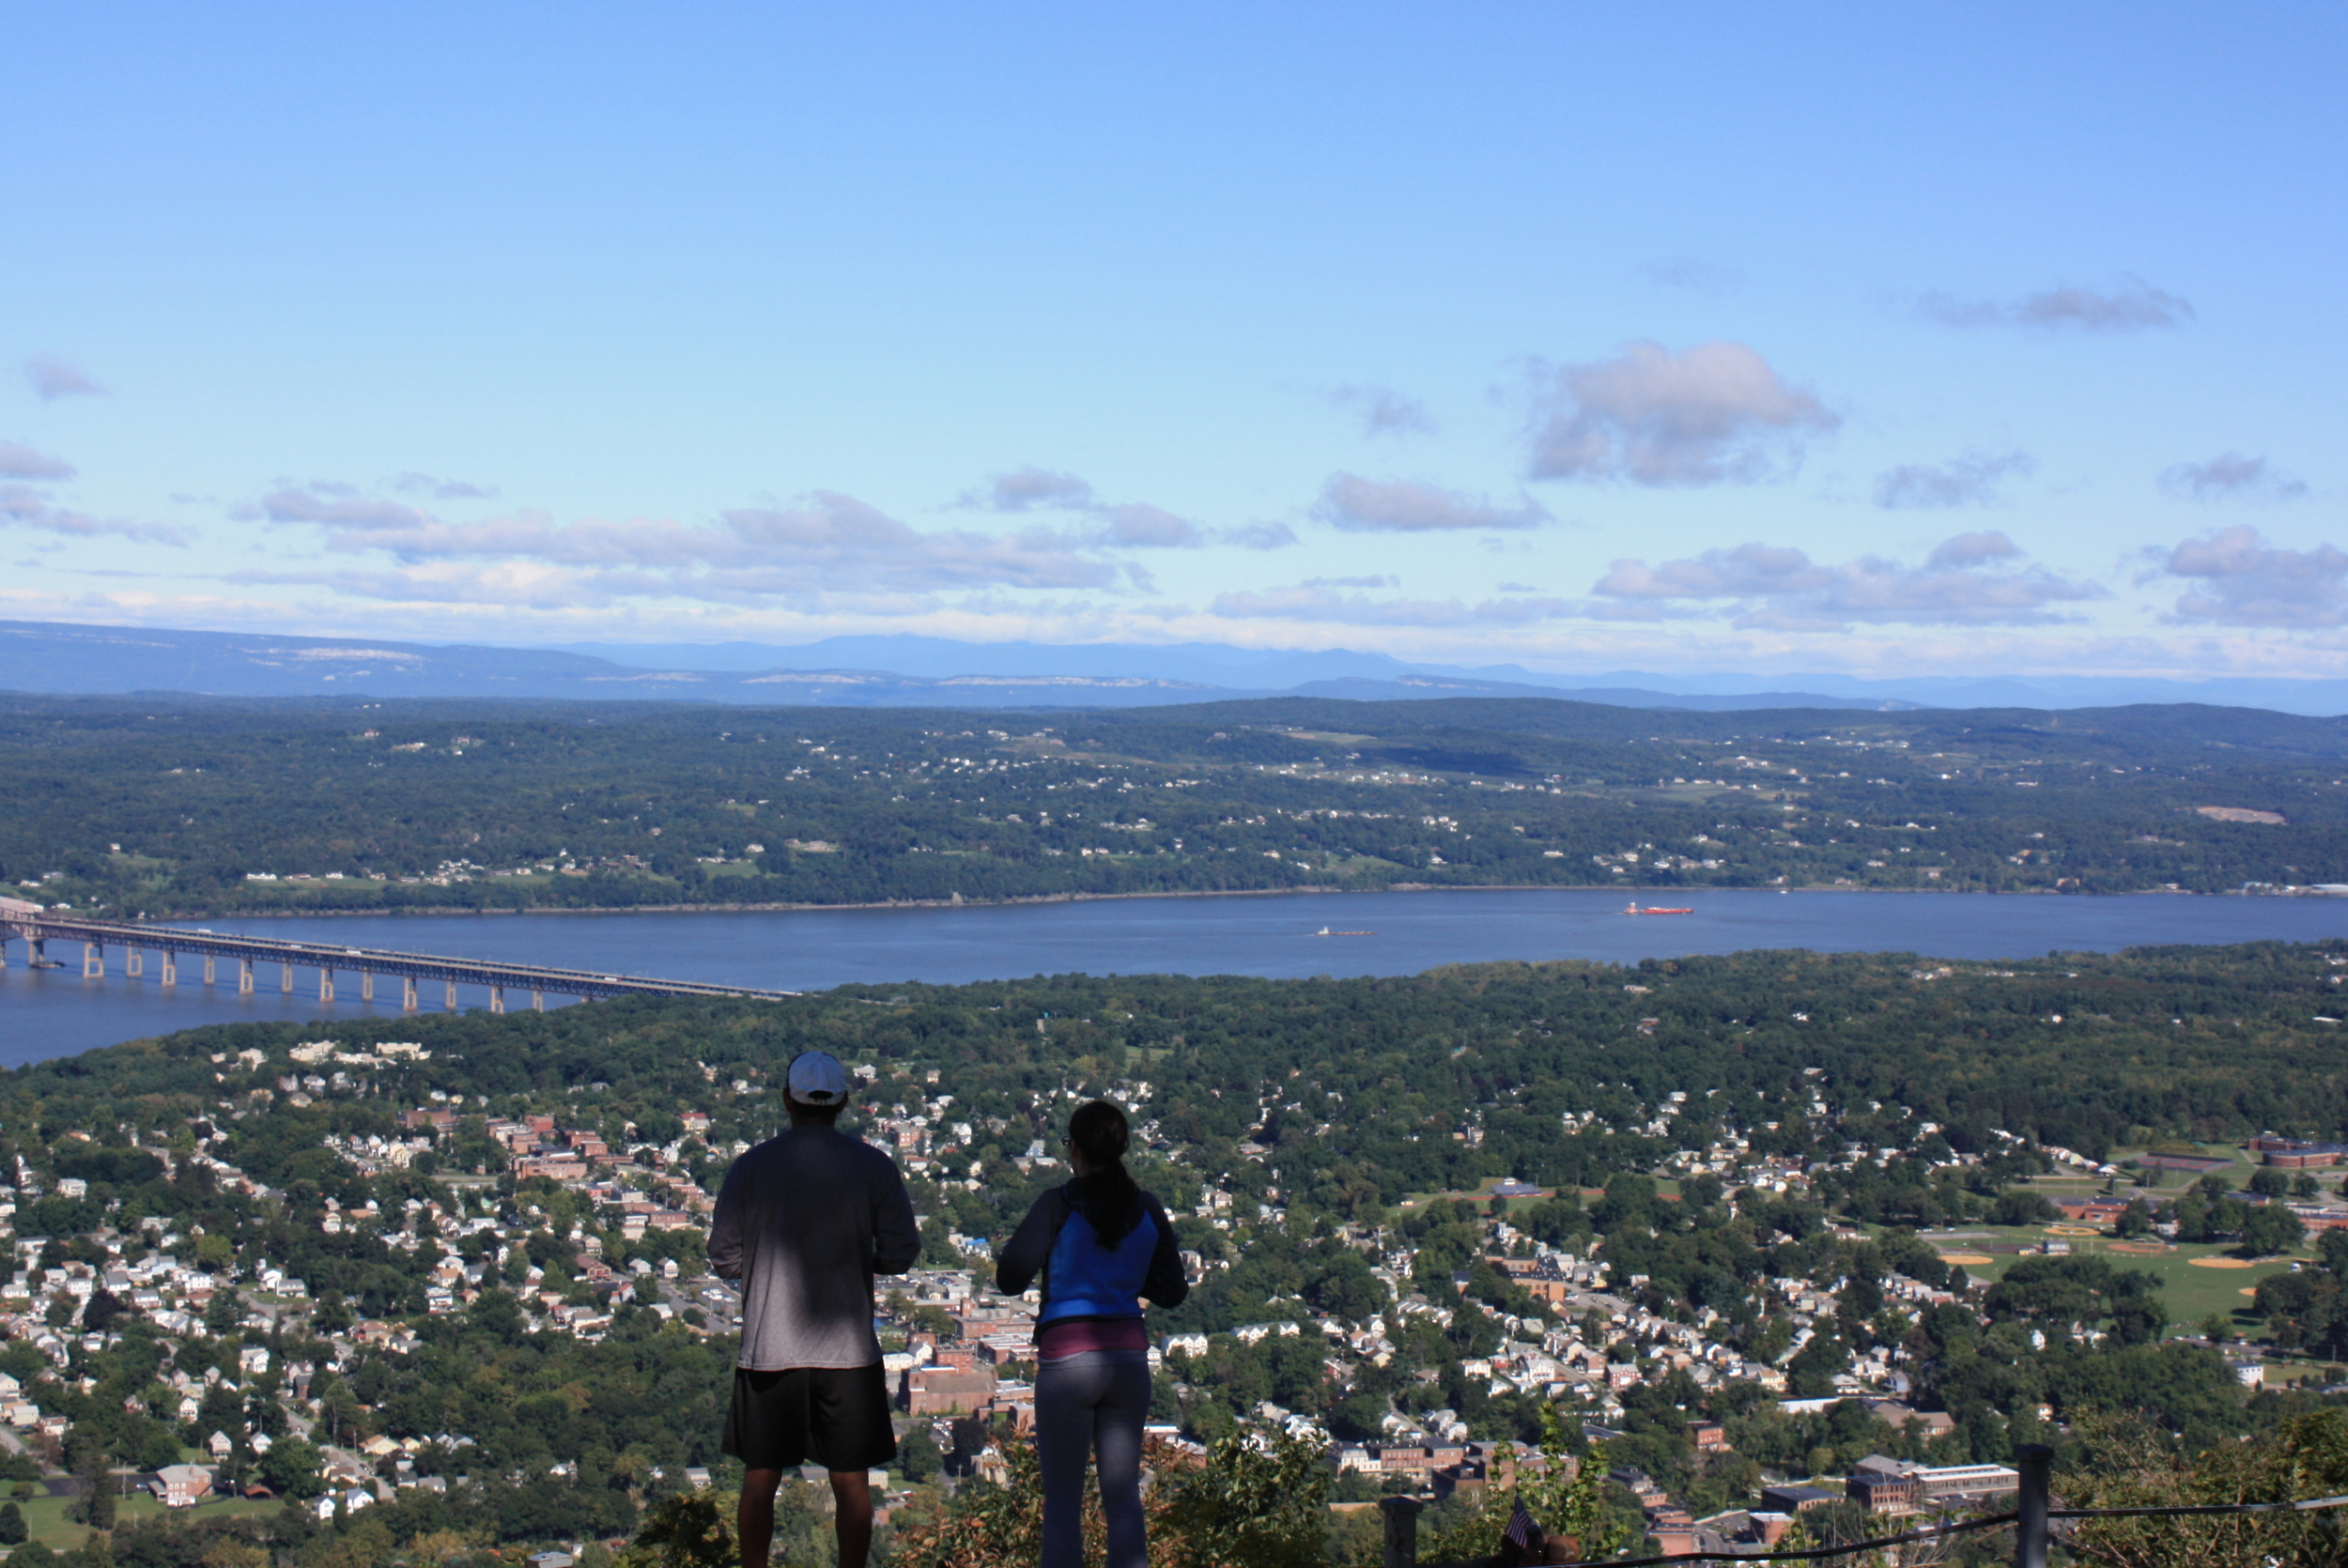 Mt. Beacon Casino Site View - Hike NY